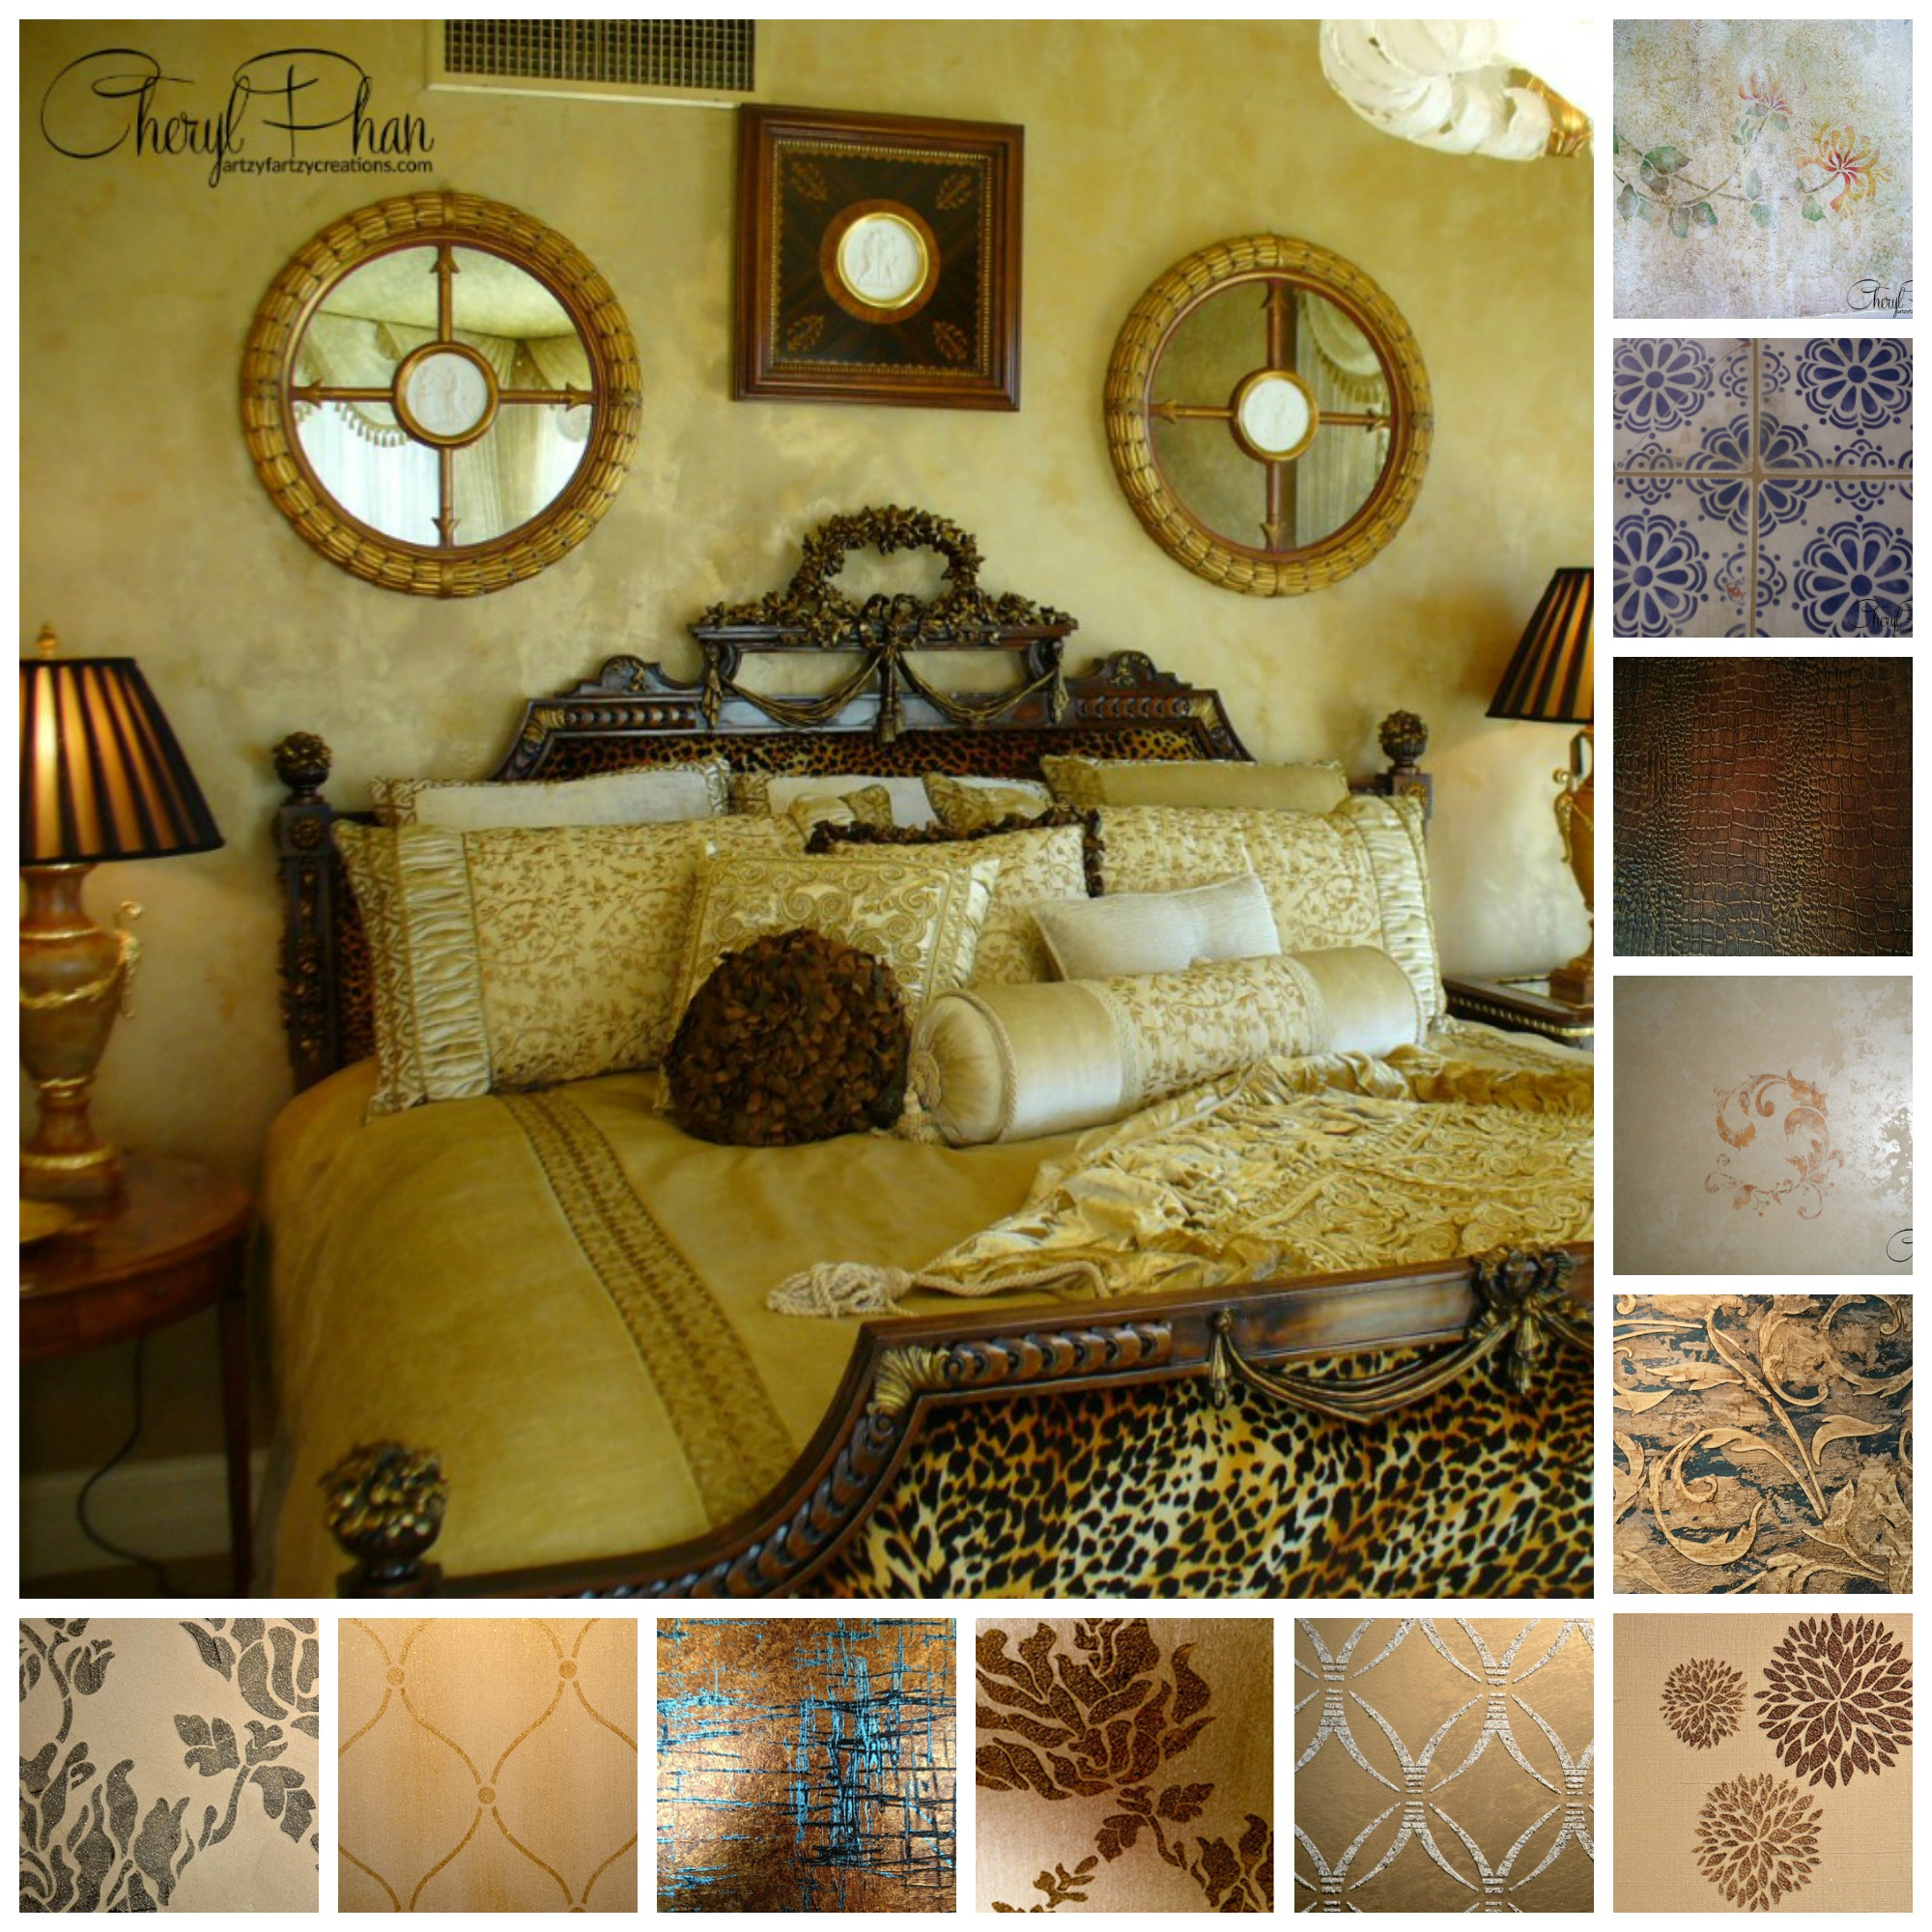 Is Faux Finishing Out Dated?   Faux Finish   Decorative Painting ...